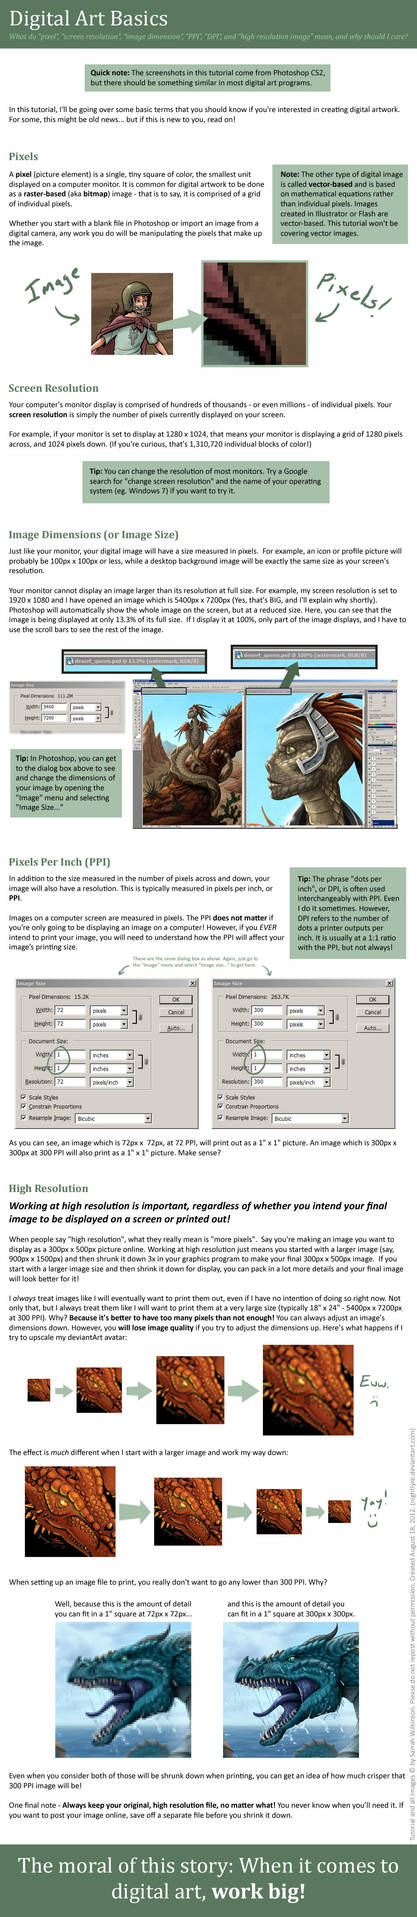 Tutorial: Digital Art Basics and Image Size Terms